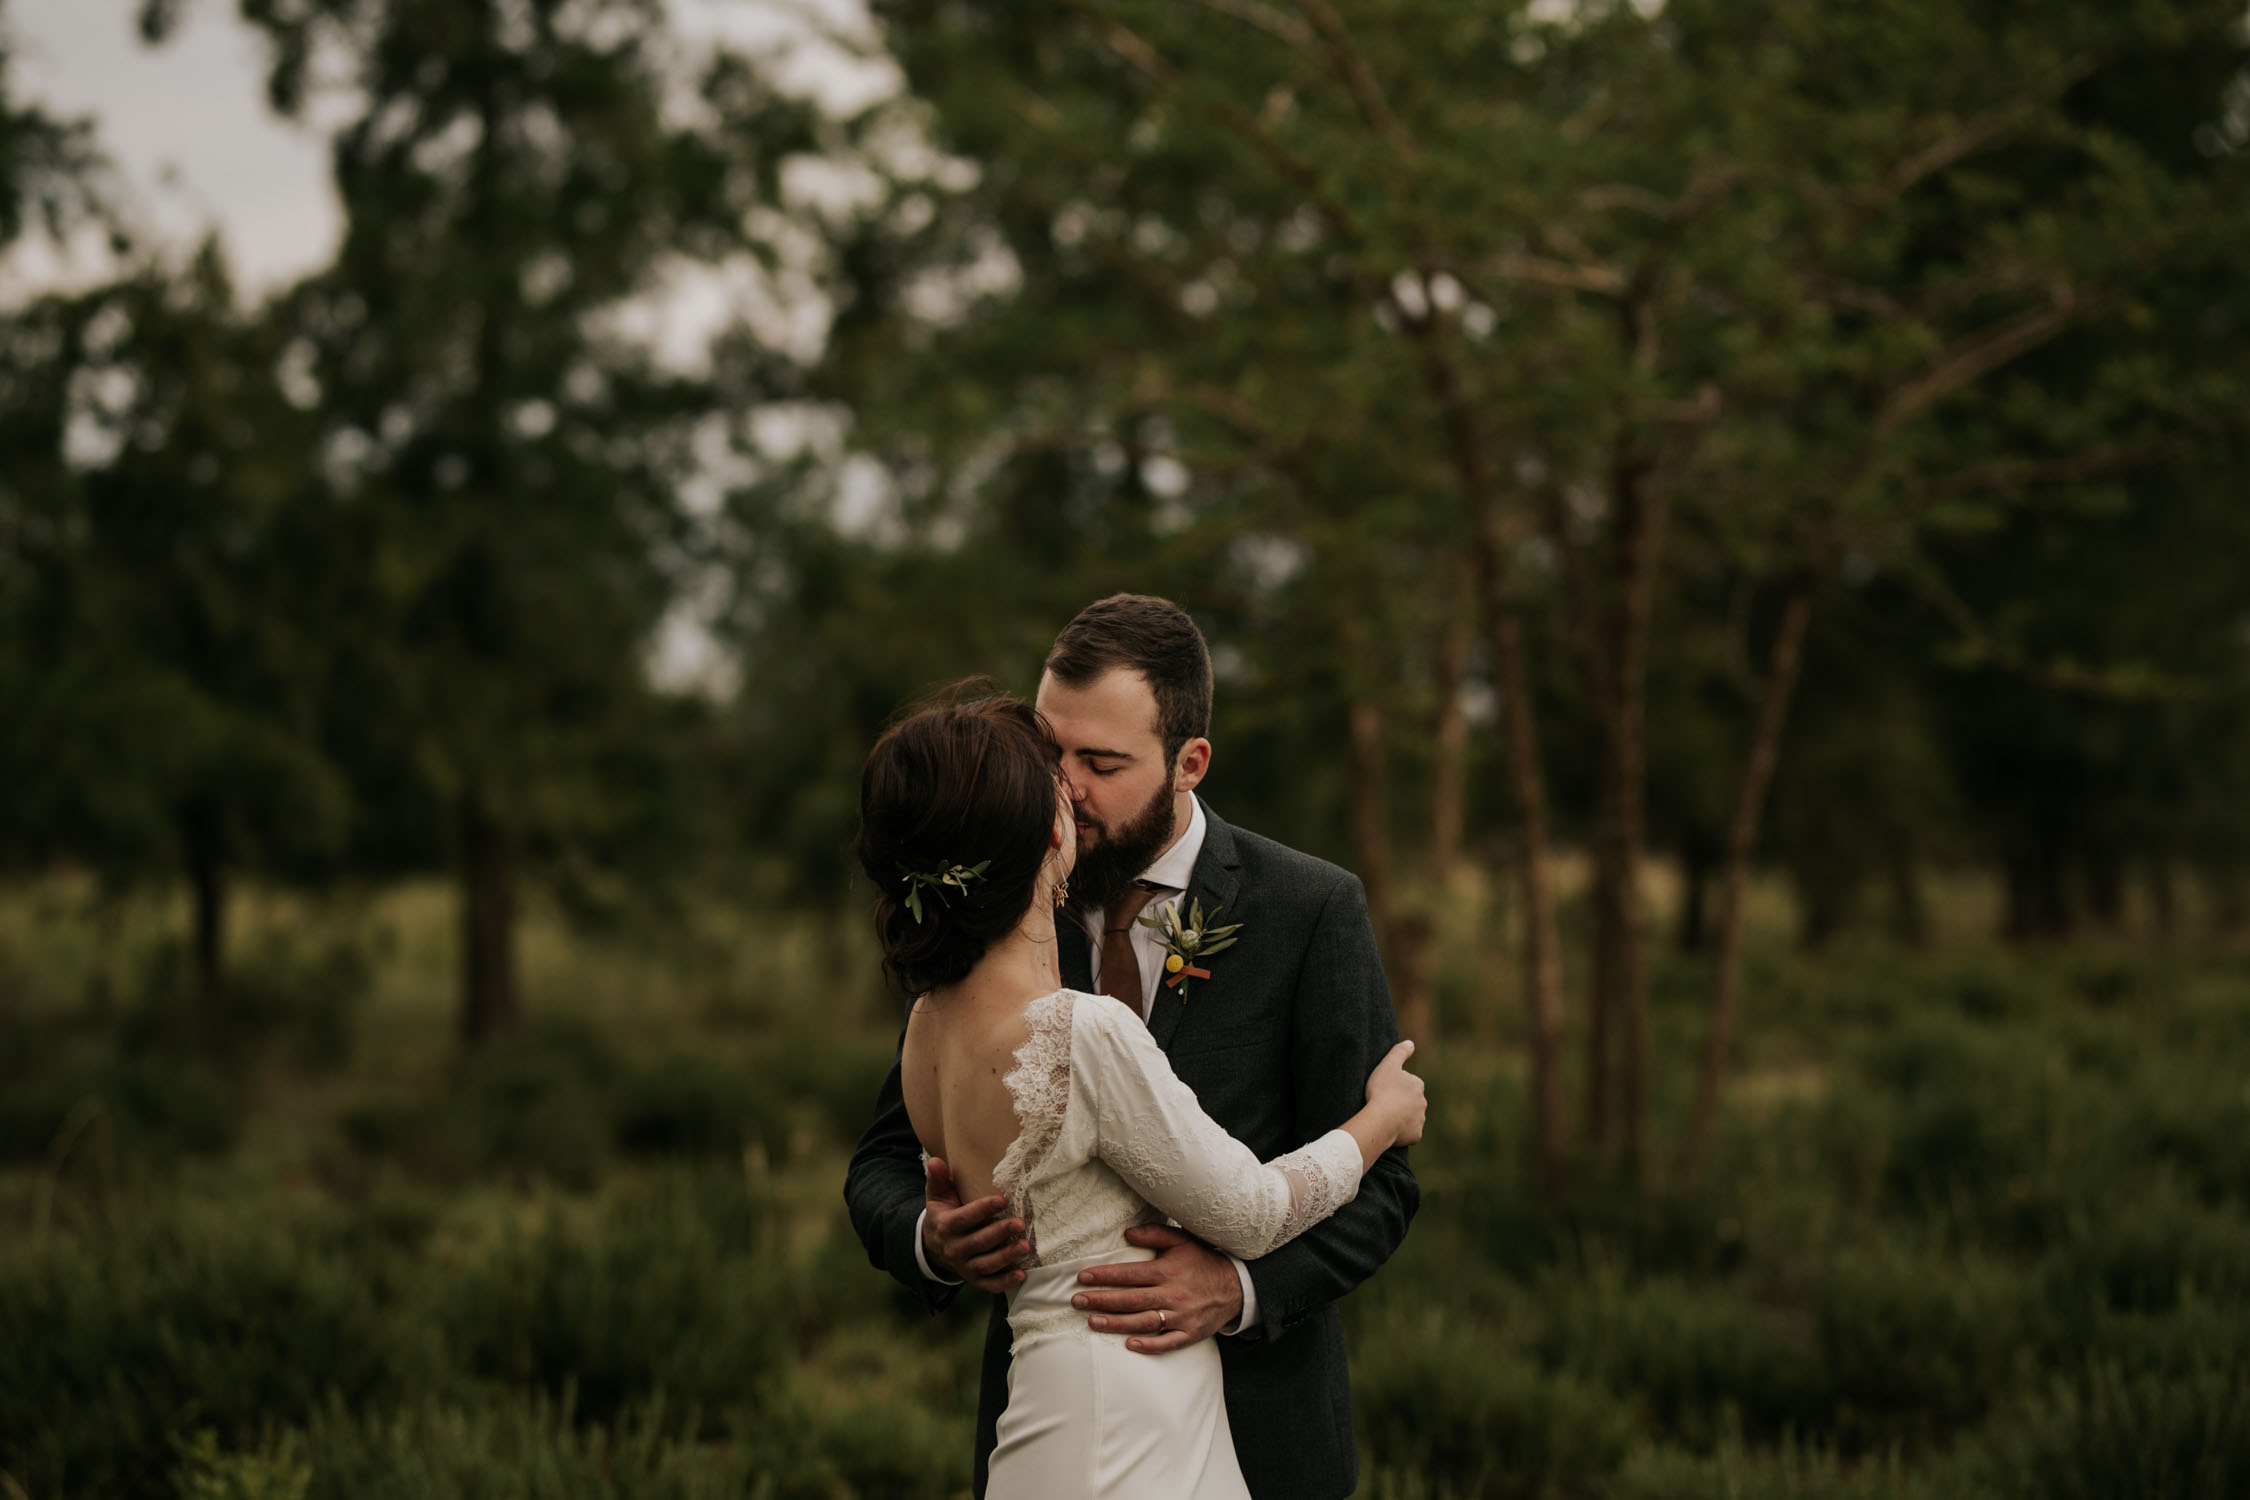 Spontaneous moment captured of groom kissing bride in forest